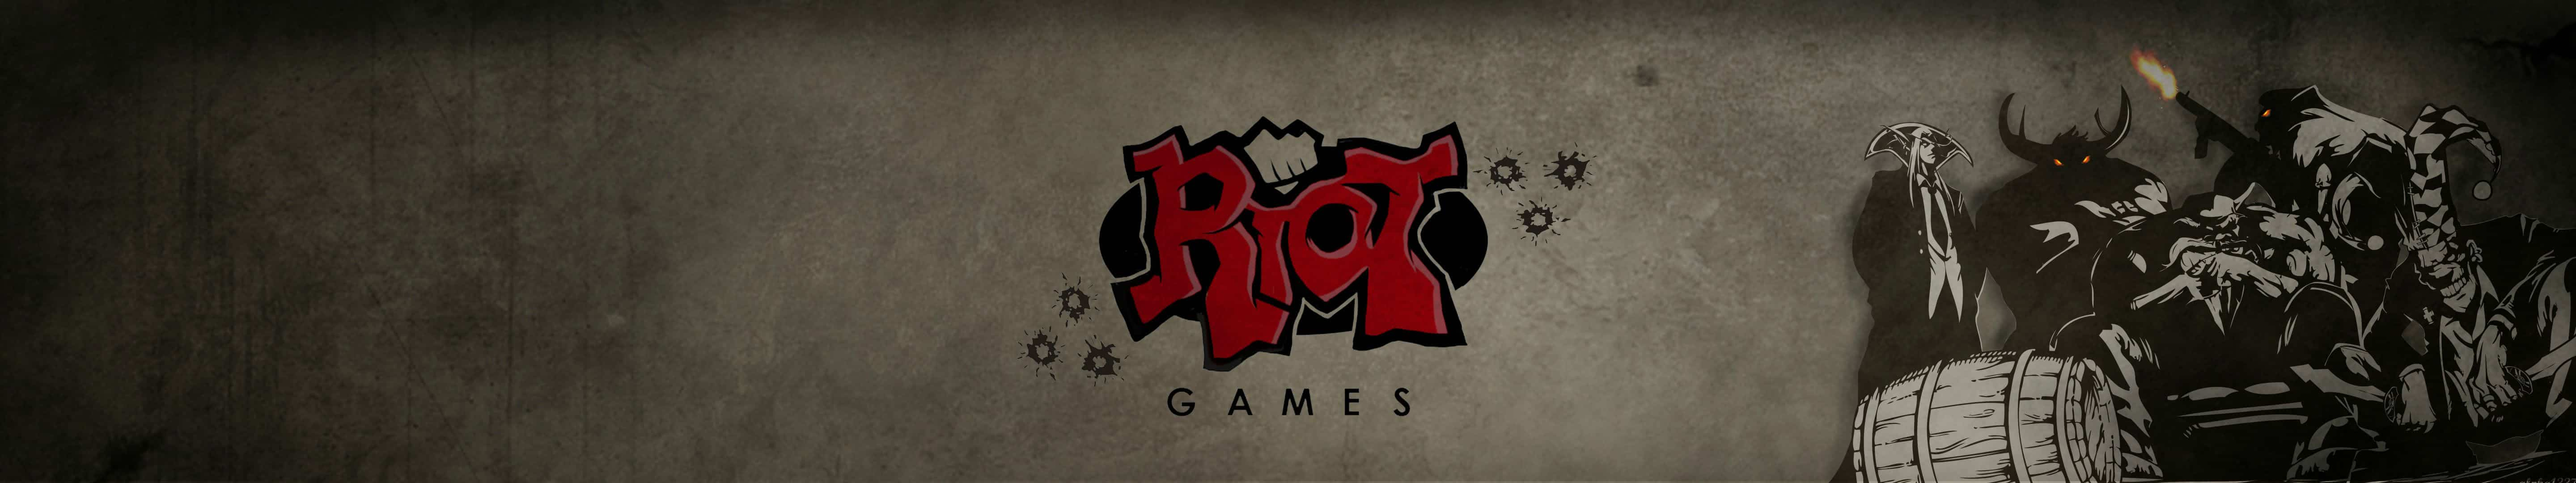 riot games triple monitor wallpaper